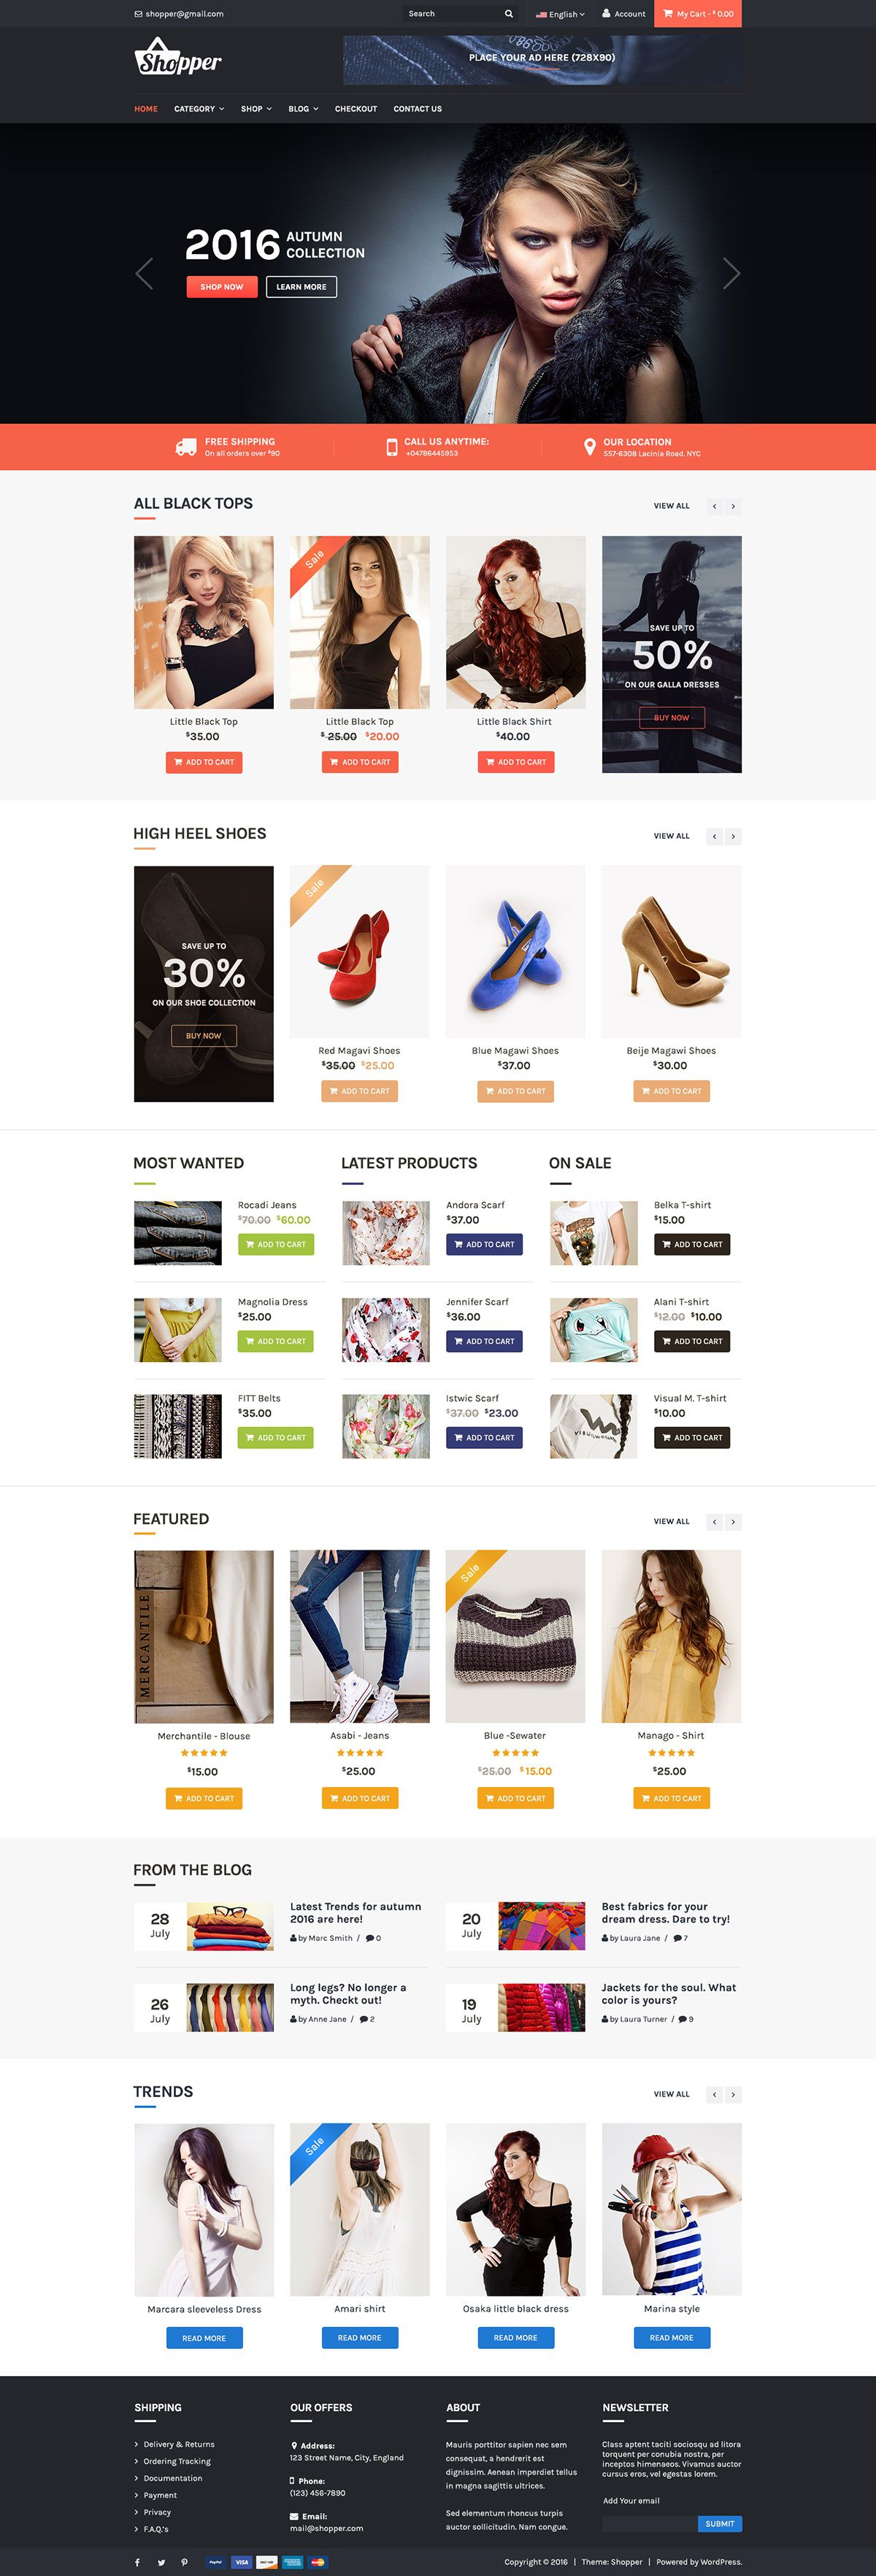 Tyche free ecommerce wordpress theme free html5 template the free best ecommerce theme powered by wordpress and woocommerce pronofoot35fo Images